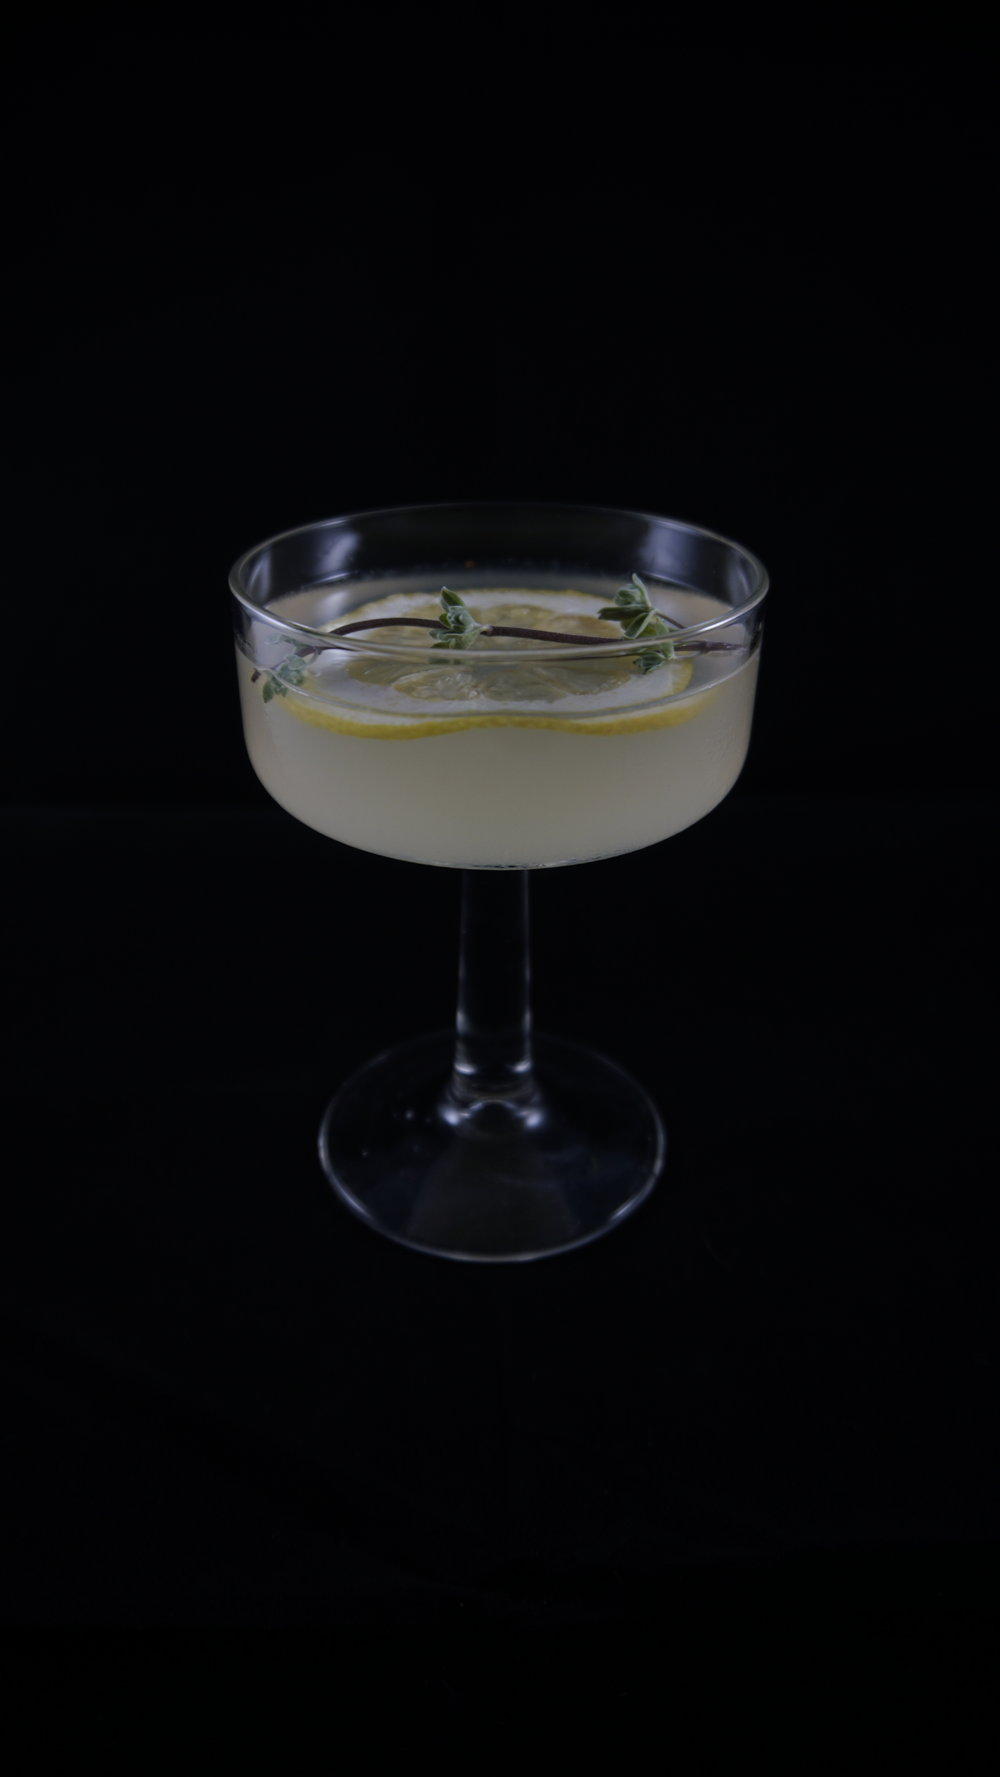 Suspiria (1977) - .75 oz Sambuco.75 oz Lillet blanc.75 oz Elderflower liquor.75 oz Lemon juiceDash of ginLemon twist for garnish Combine all liquids in a shaker with ice. Strain and pour in tall glass. Add lemon twist for garnish.  For extra botanicals on the nose, add a sprig of fresh herbs (here we used fresh marjoram).